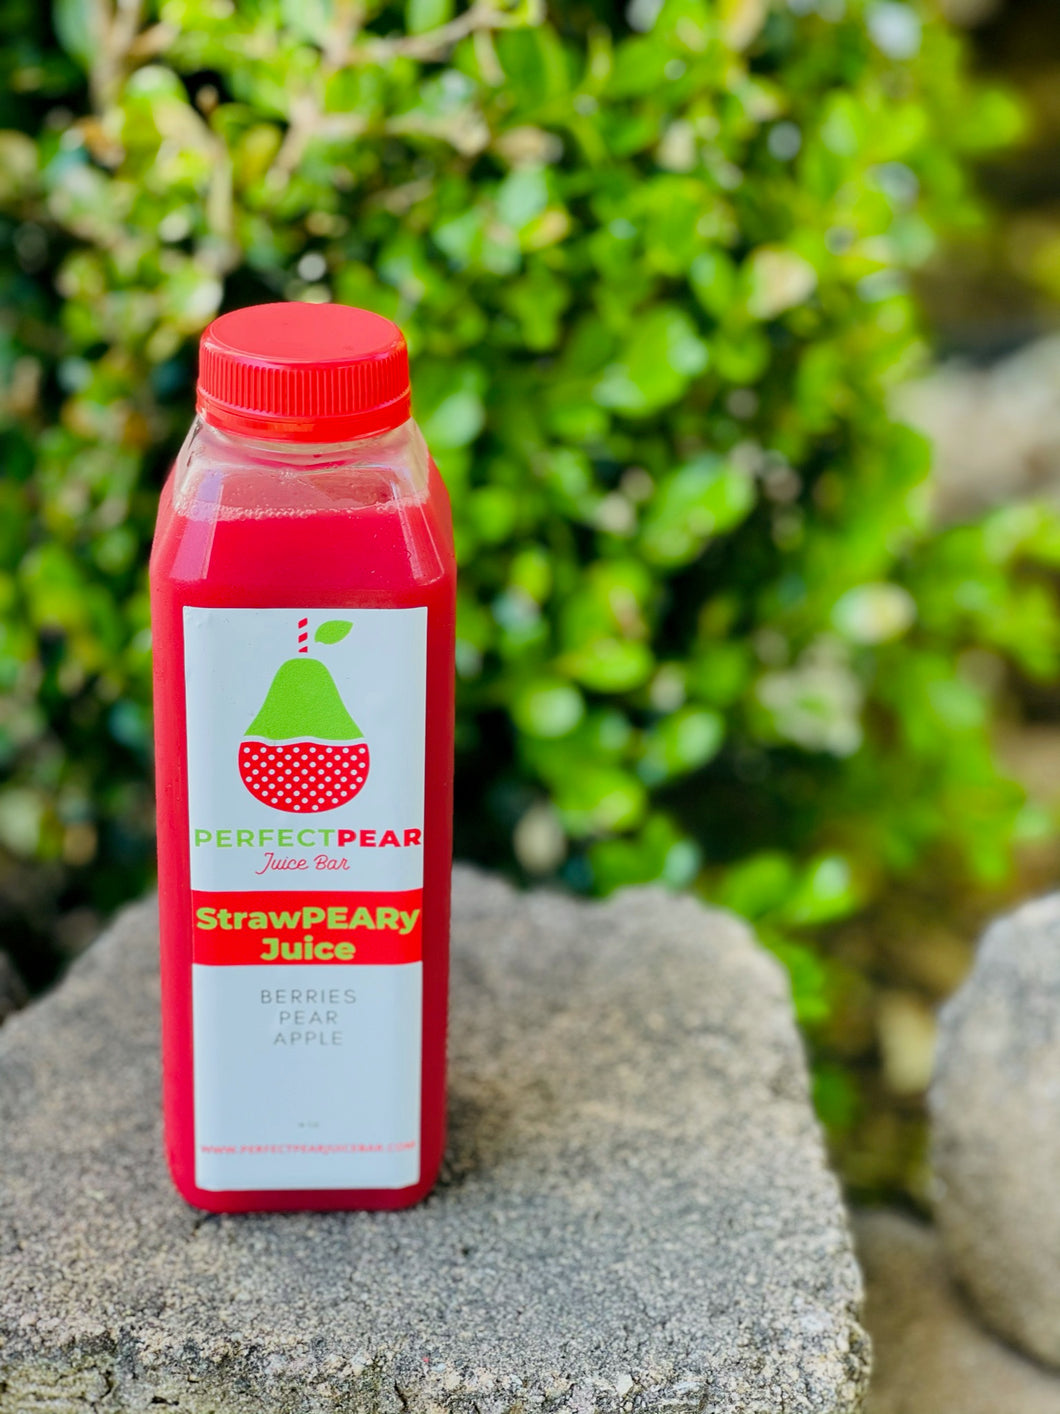 StrawPEARy Cold Pressed Juice